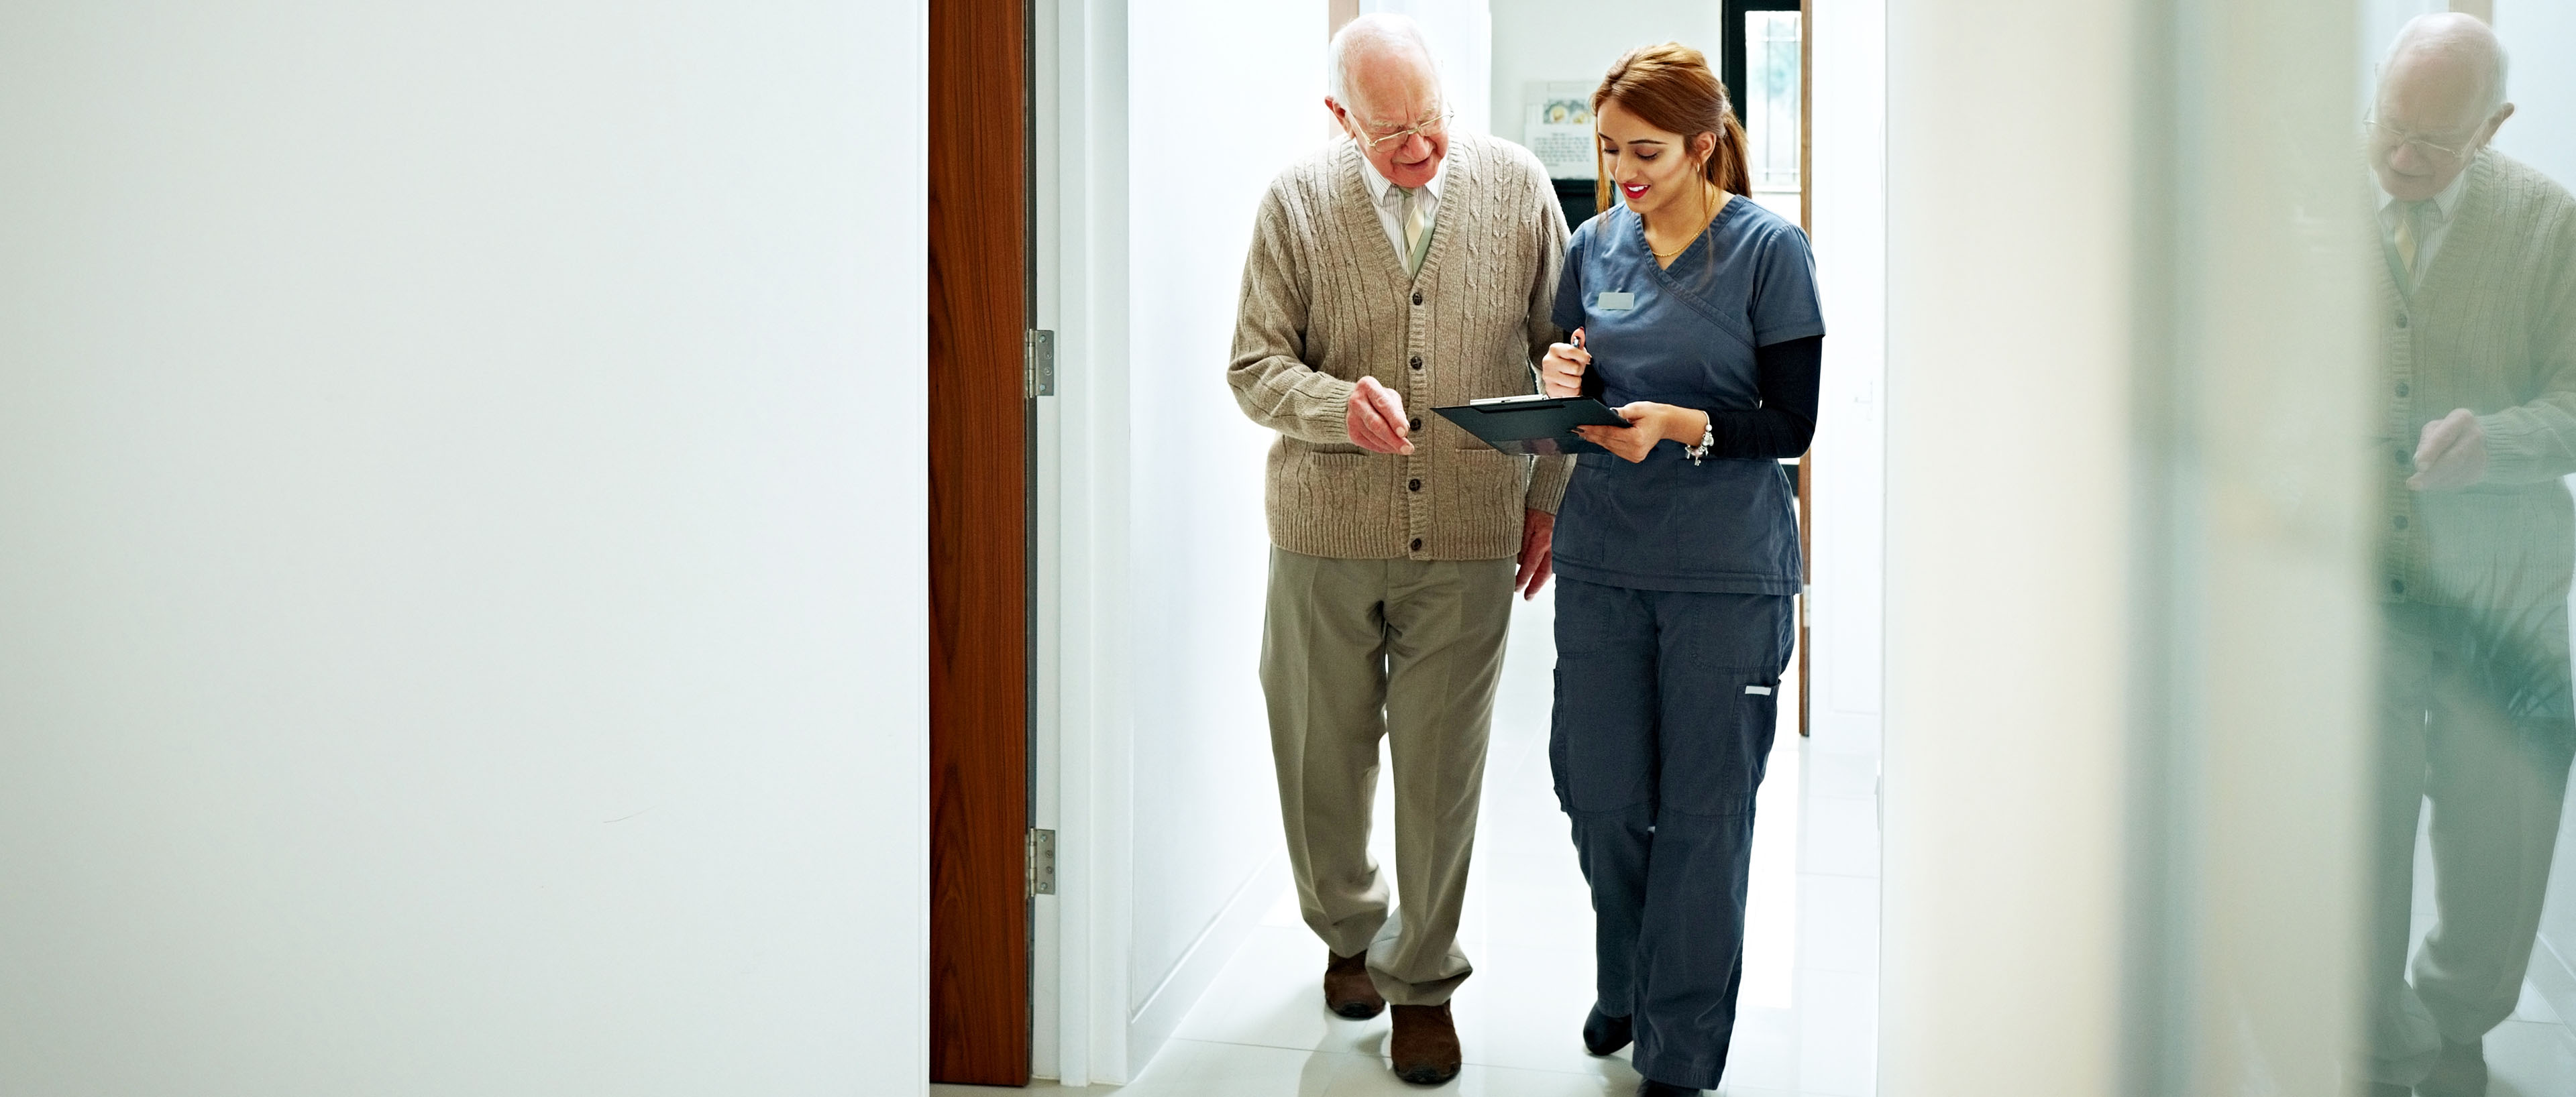 Nurse sharing medical report with senior patient